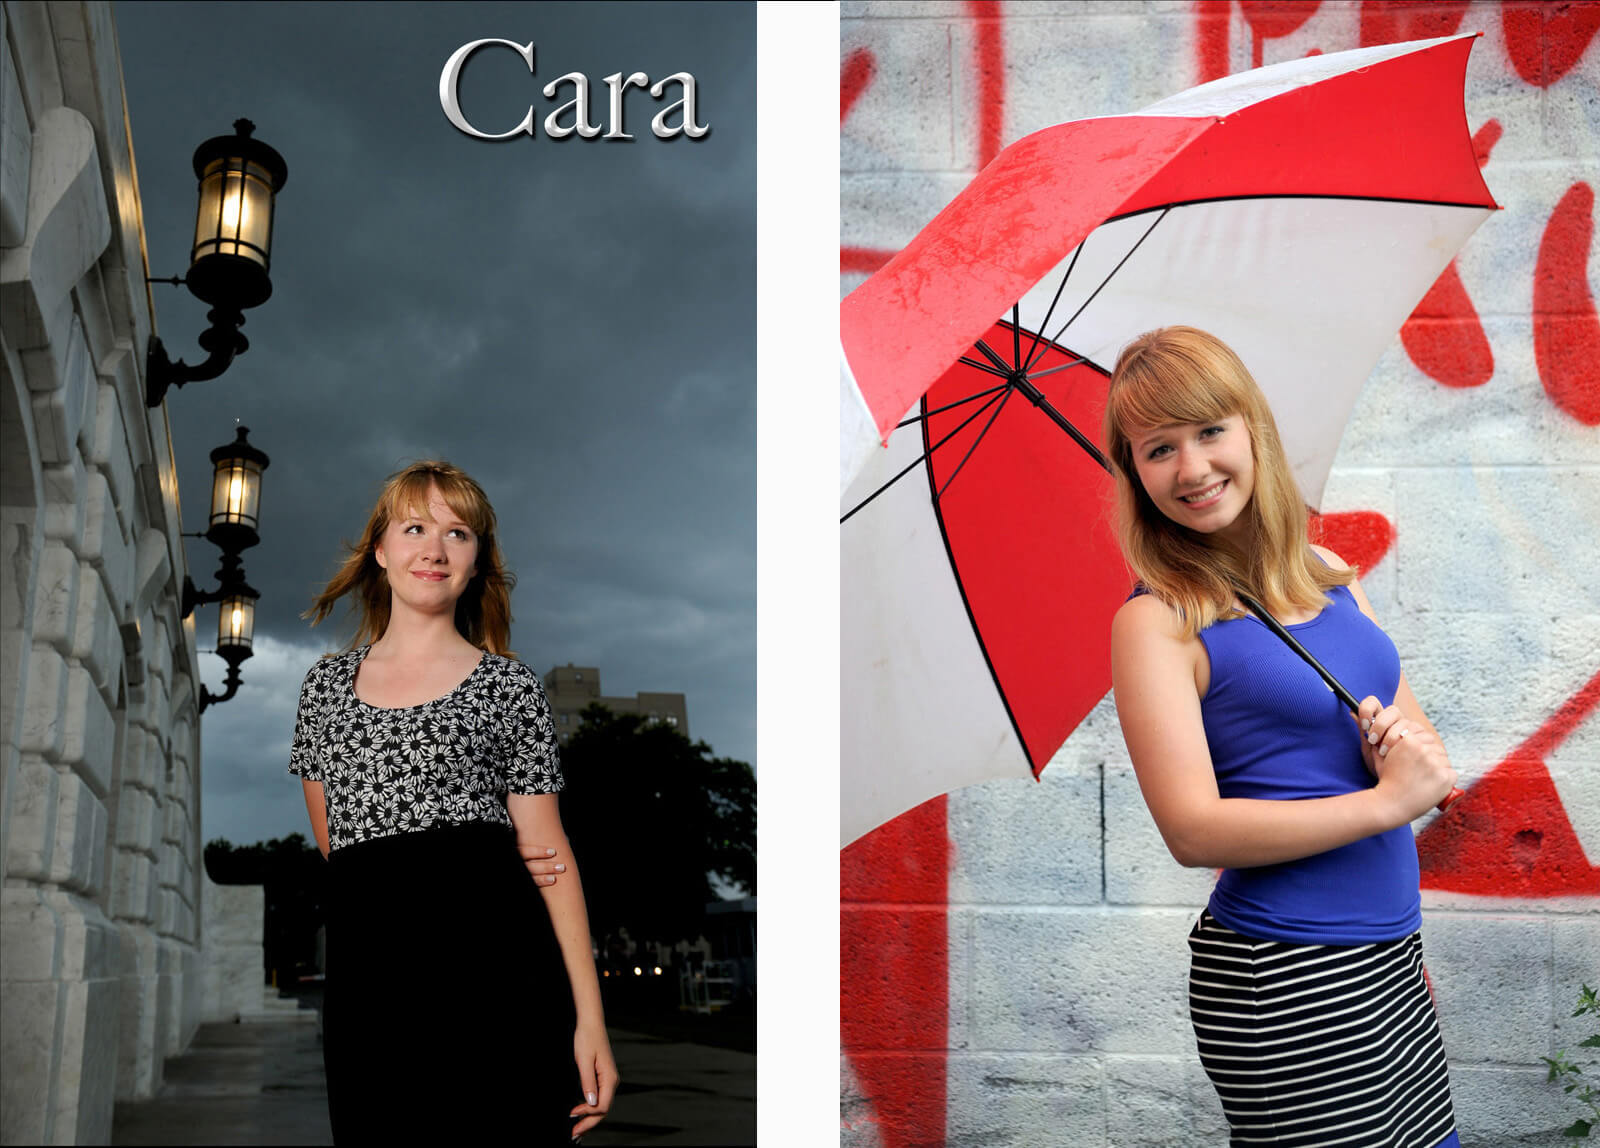 Metro Detroit, Michigan senior photography is all done outdoors, on location which means shooting rain or shine and can create some amazingly dramatic photos as well!